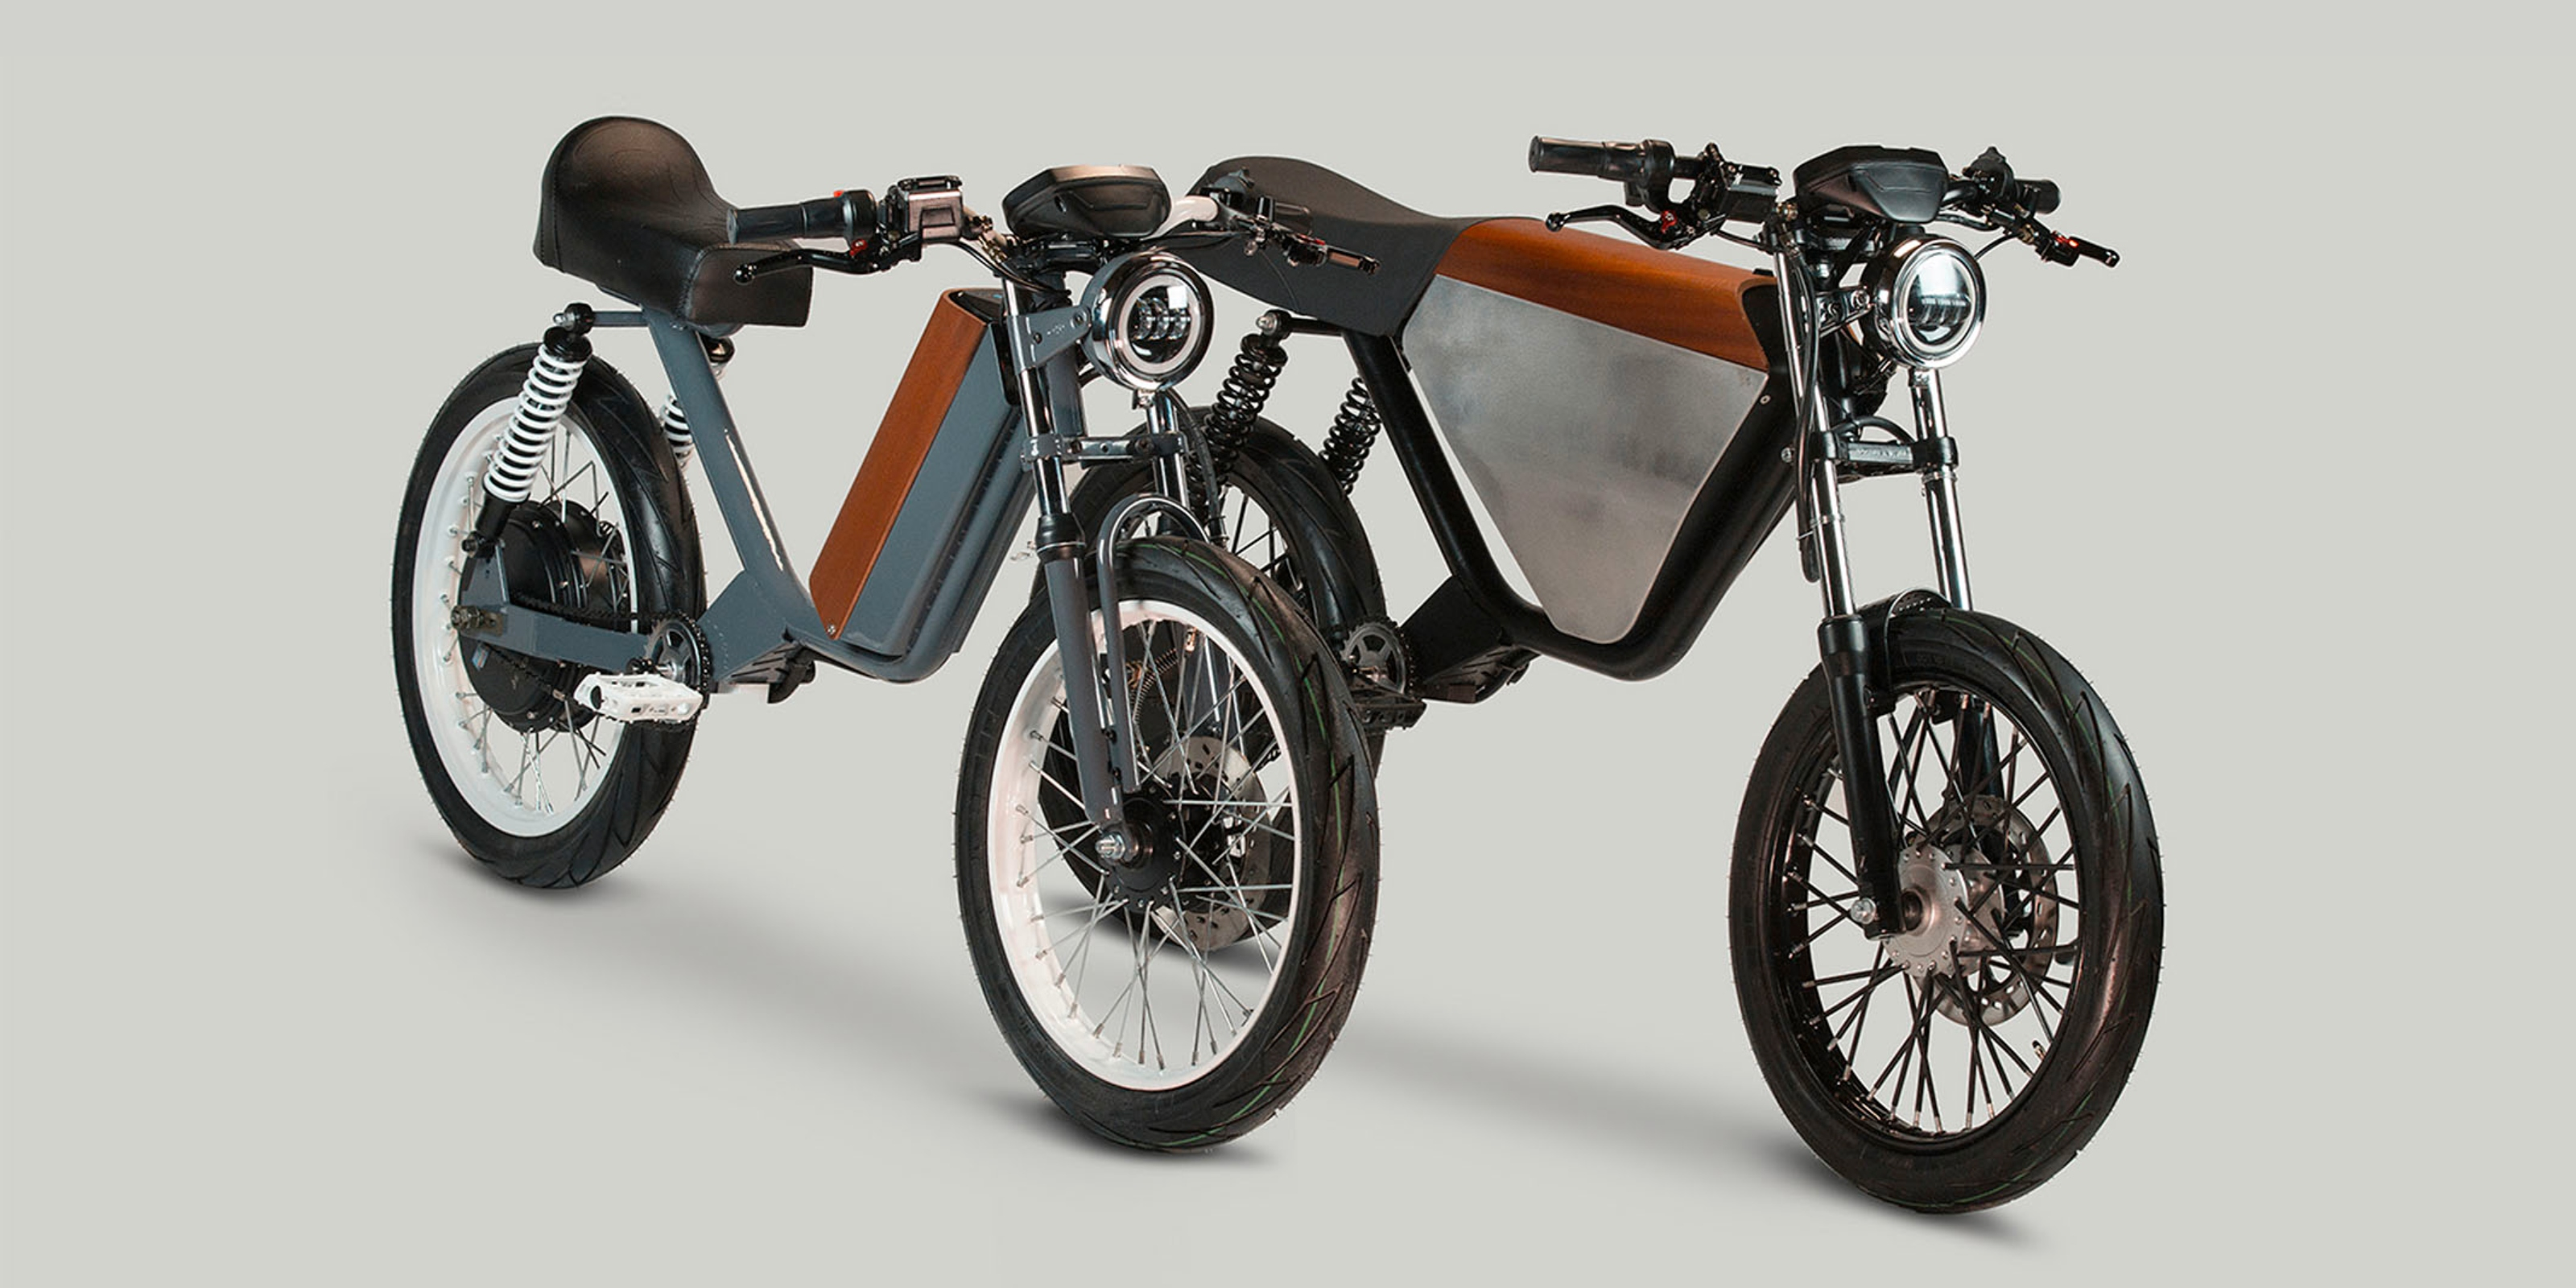 Onyx S New Retro Styled 30 And 60 Mph Electric Mopeds Are